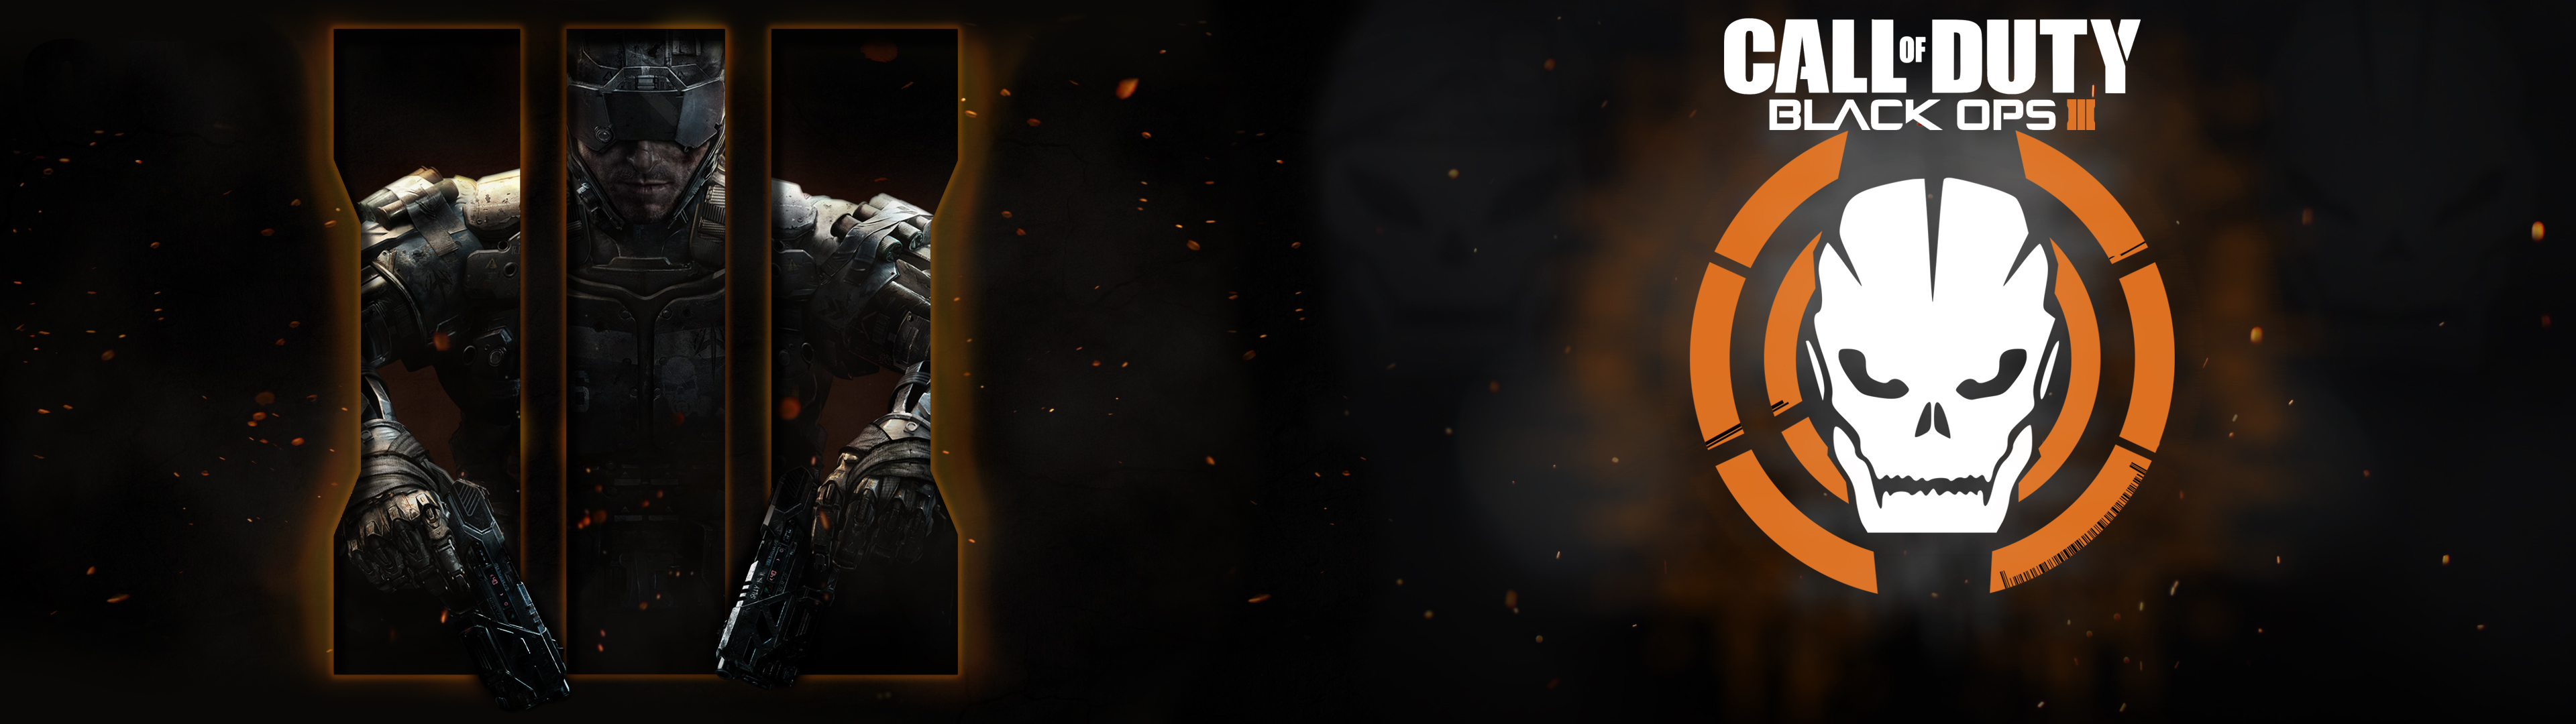 Call Of Duty Black Ops 3 Dual Wallpaper 05 By Toby Affenbude On 3840x1080